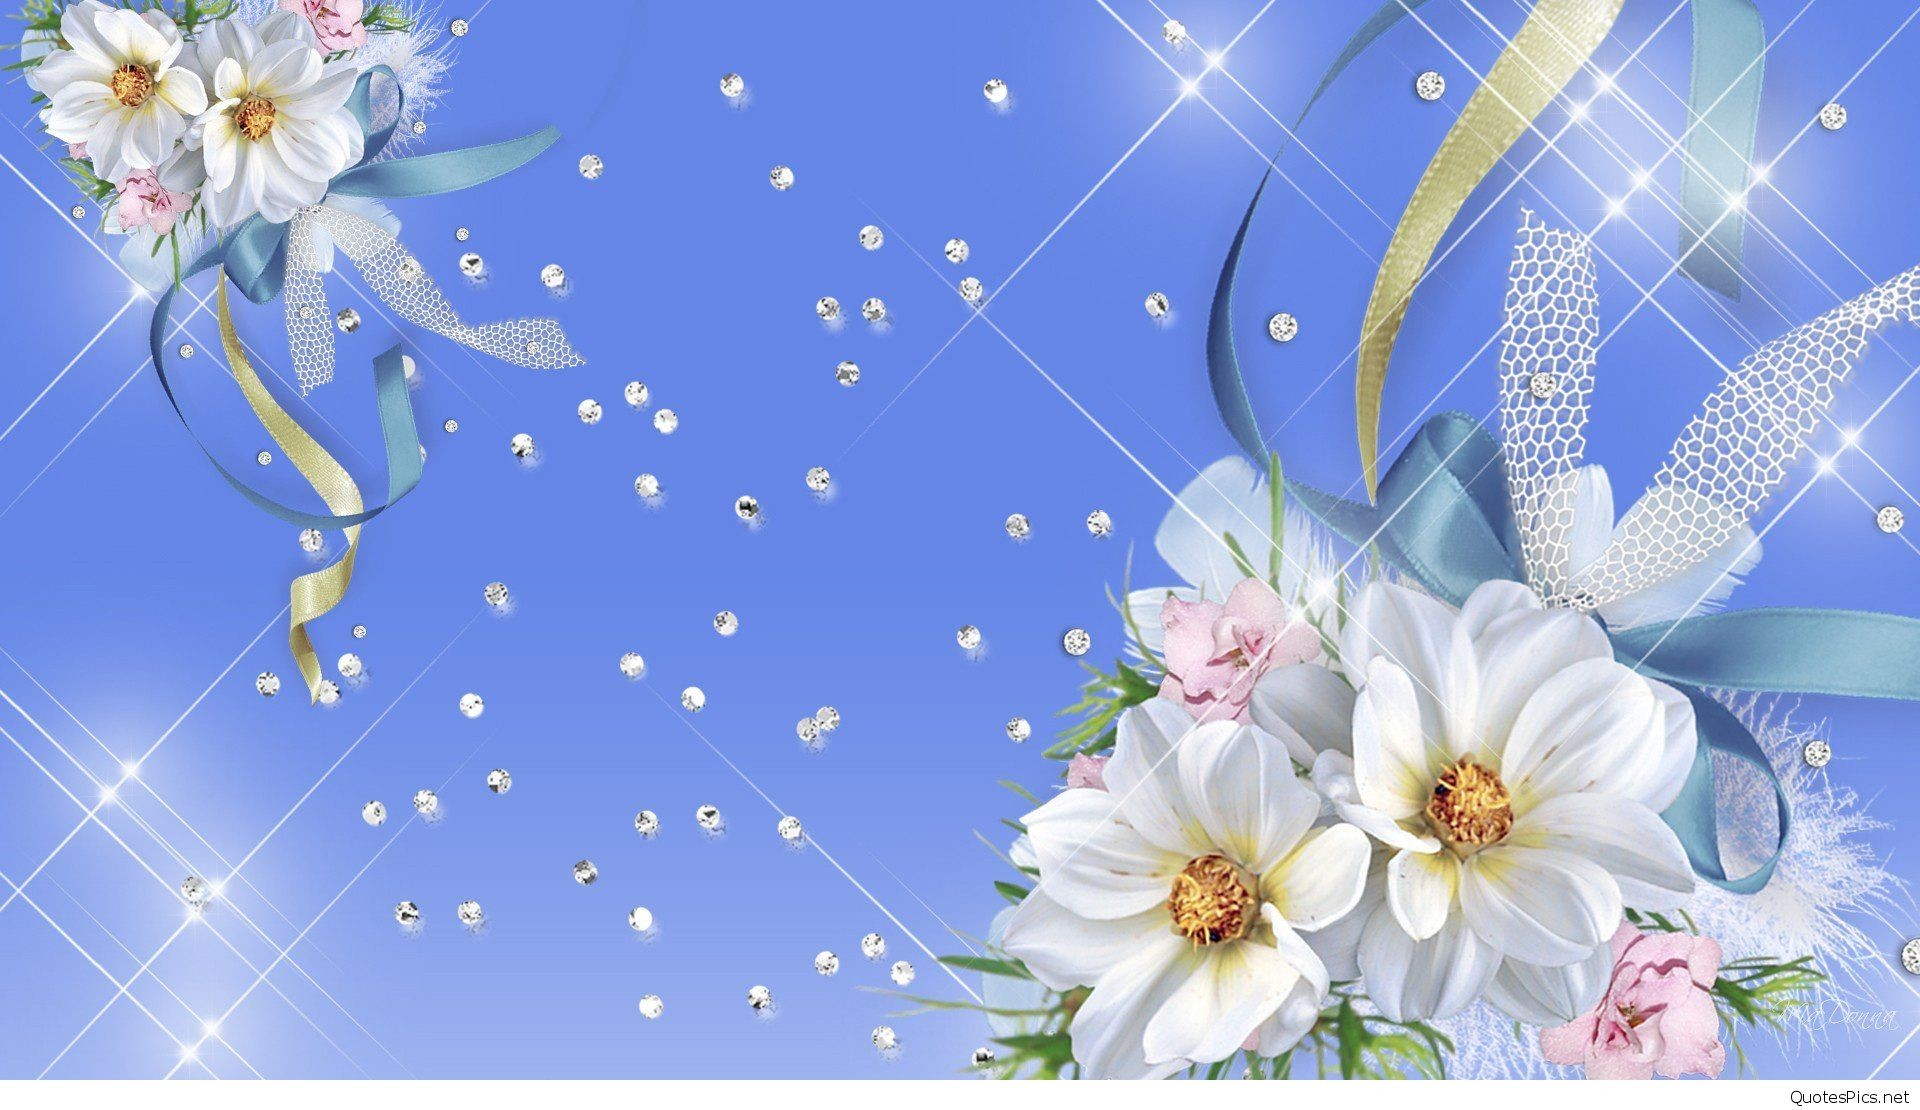 Res: 1920x1110, sparkles-white-wallpaper-winter-blue-sparkle-wallpapers -images-pink-elegance-firefox-persona-flowers-ribbon